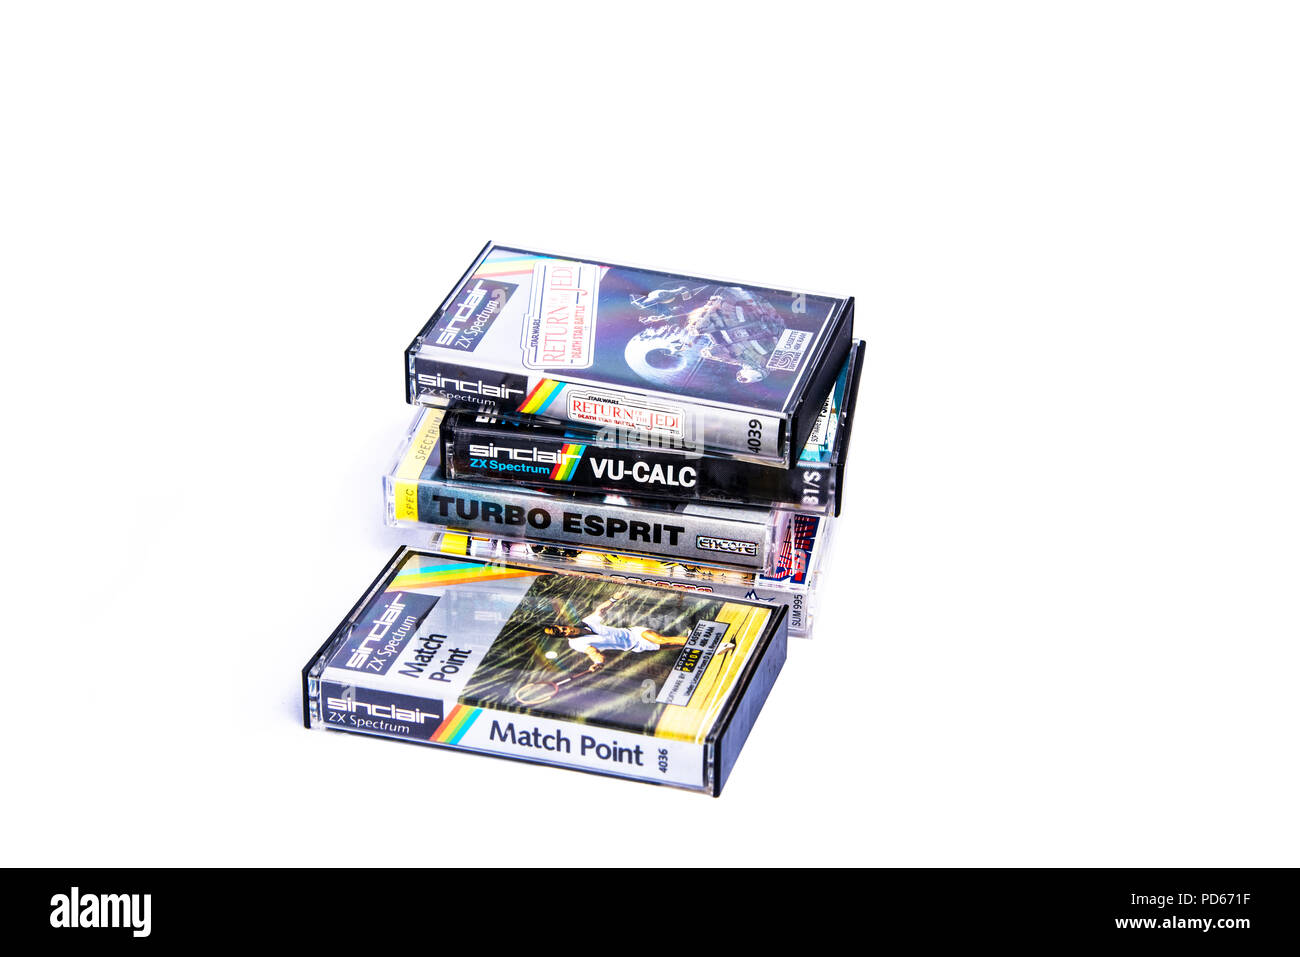 Program cassette tapes for the Sinclair Spectrum ZX - Stock Image